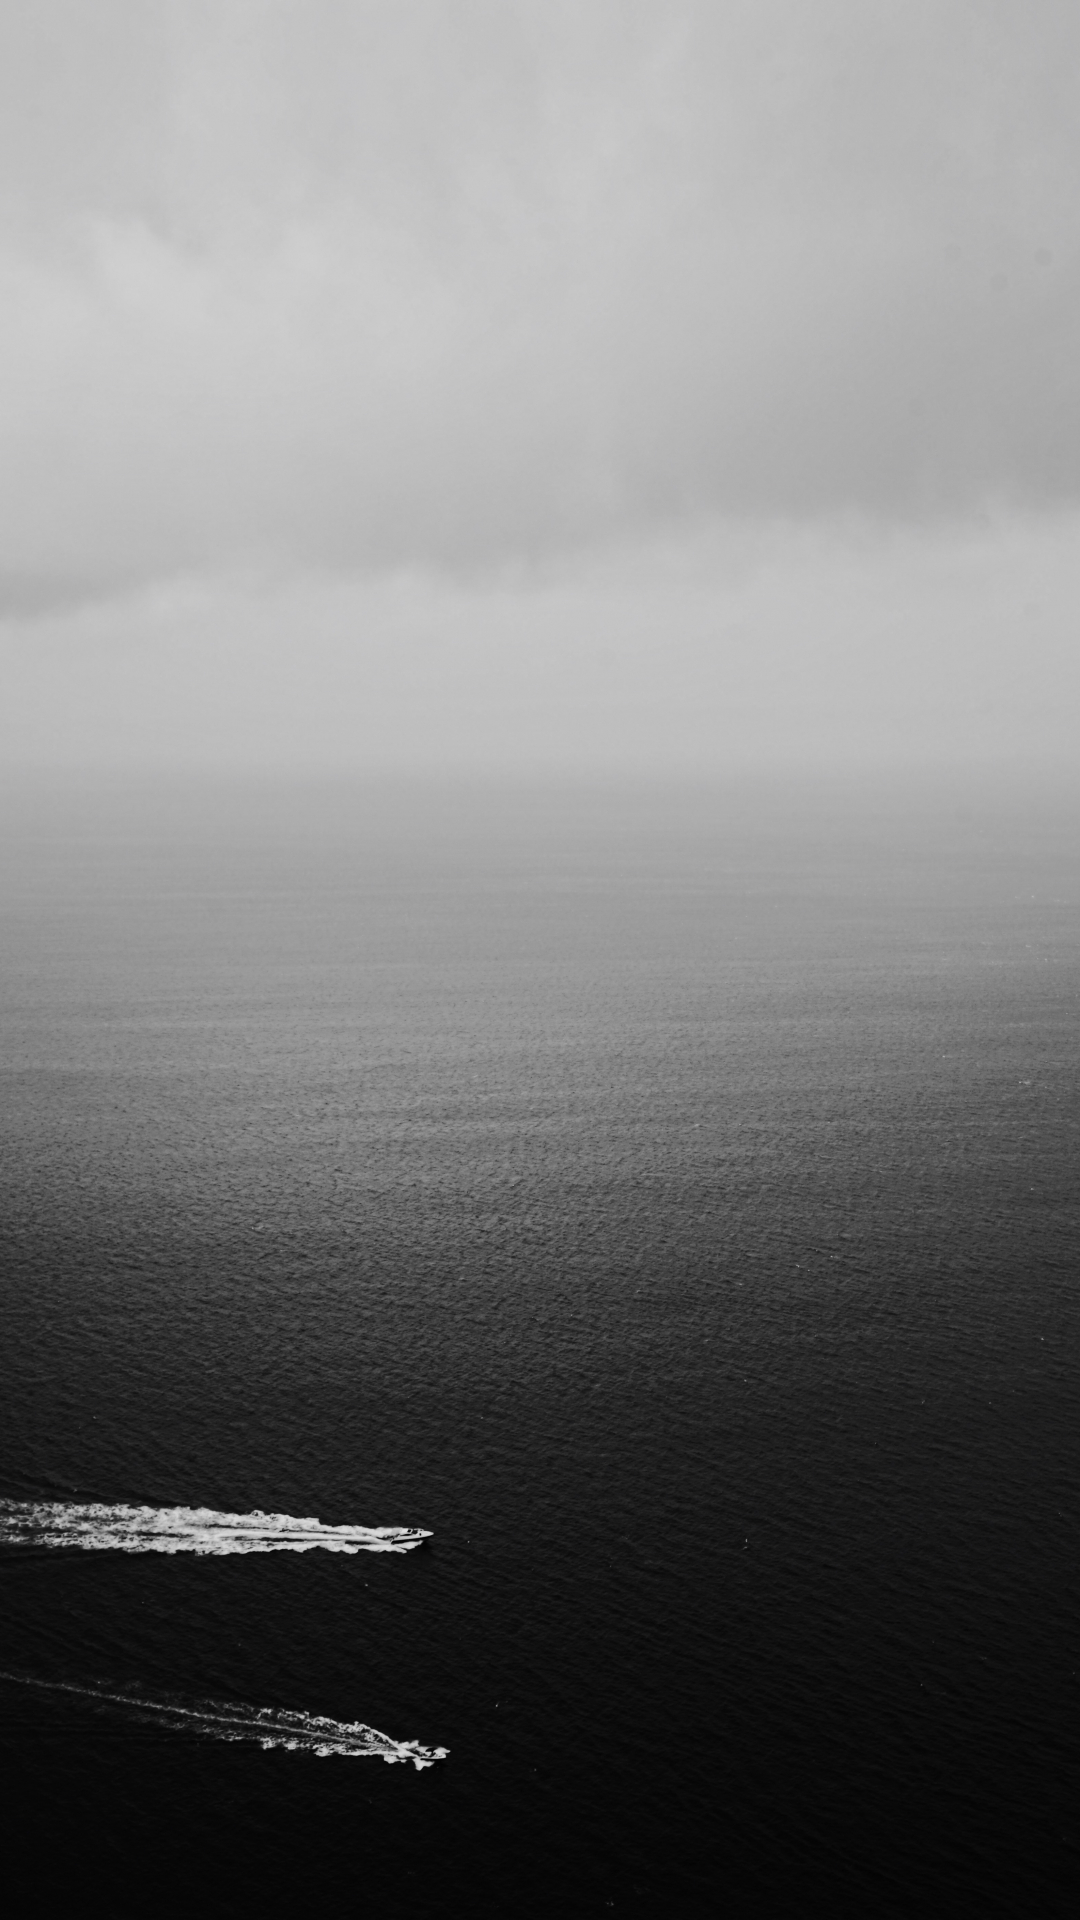 Sea, Sky, Cloud And Dark iPhone Wallpaper